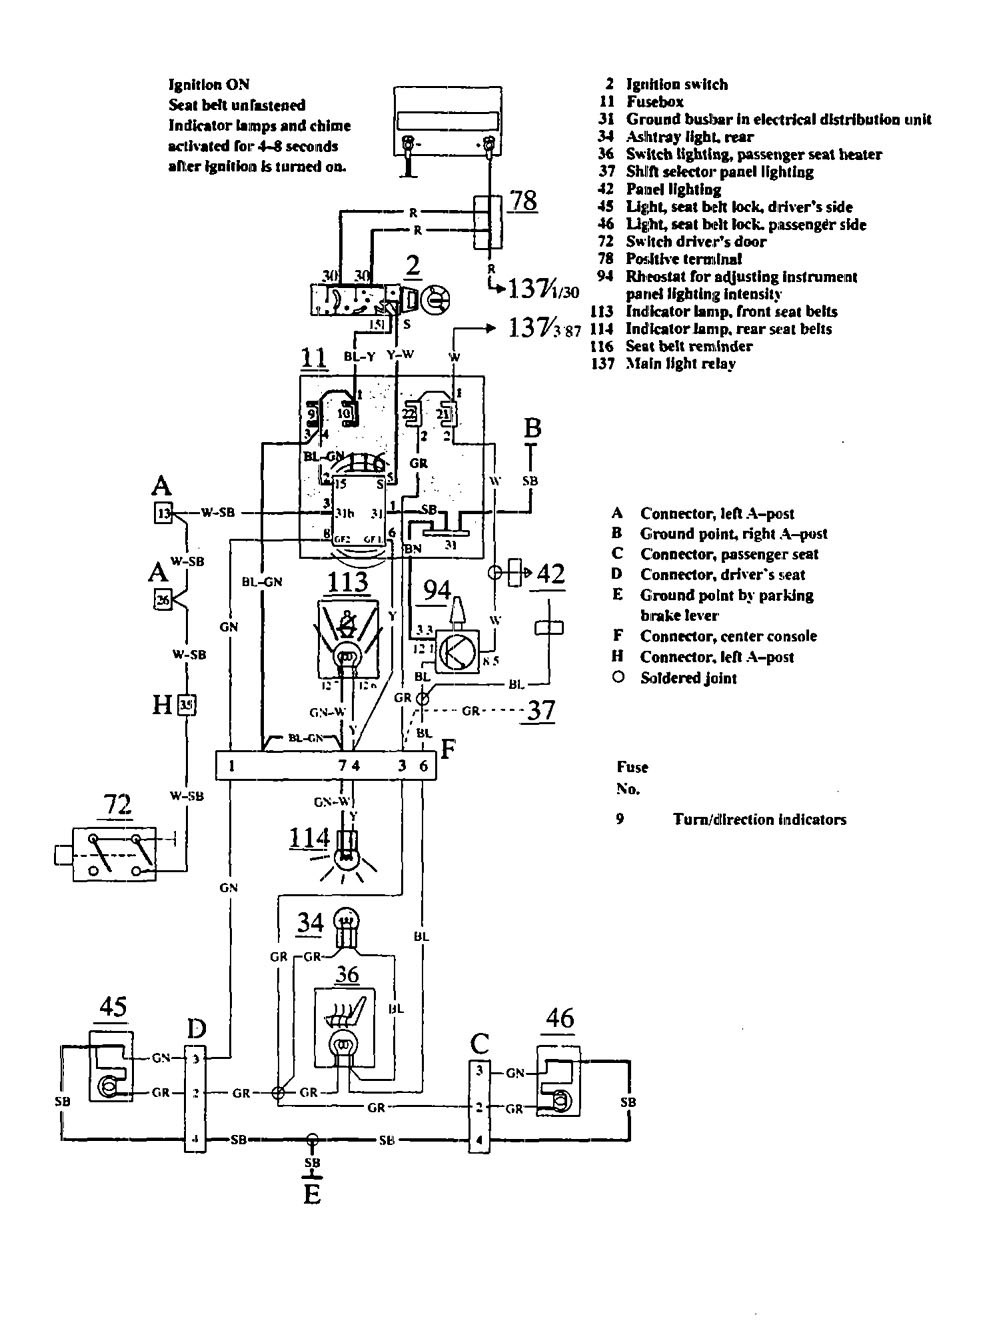 1989 Cadillac Sedan Deville Radio Wiring Diagram 1989